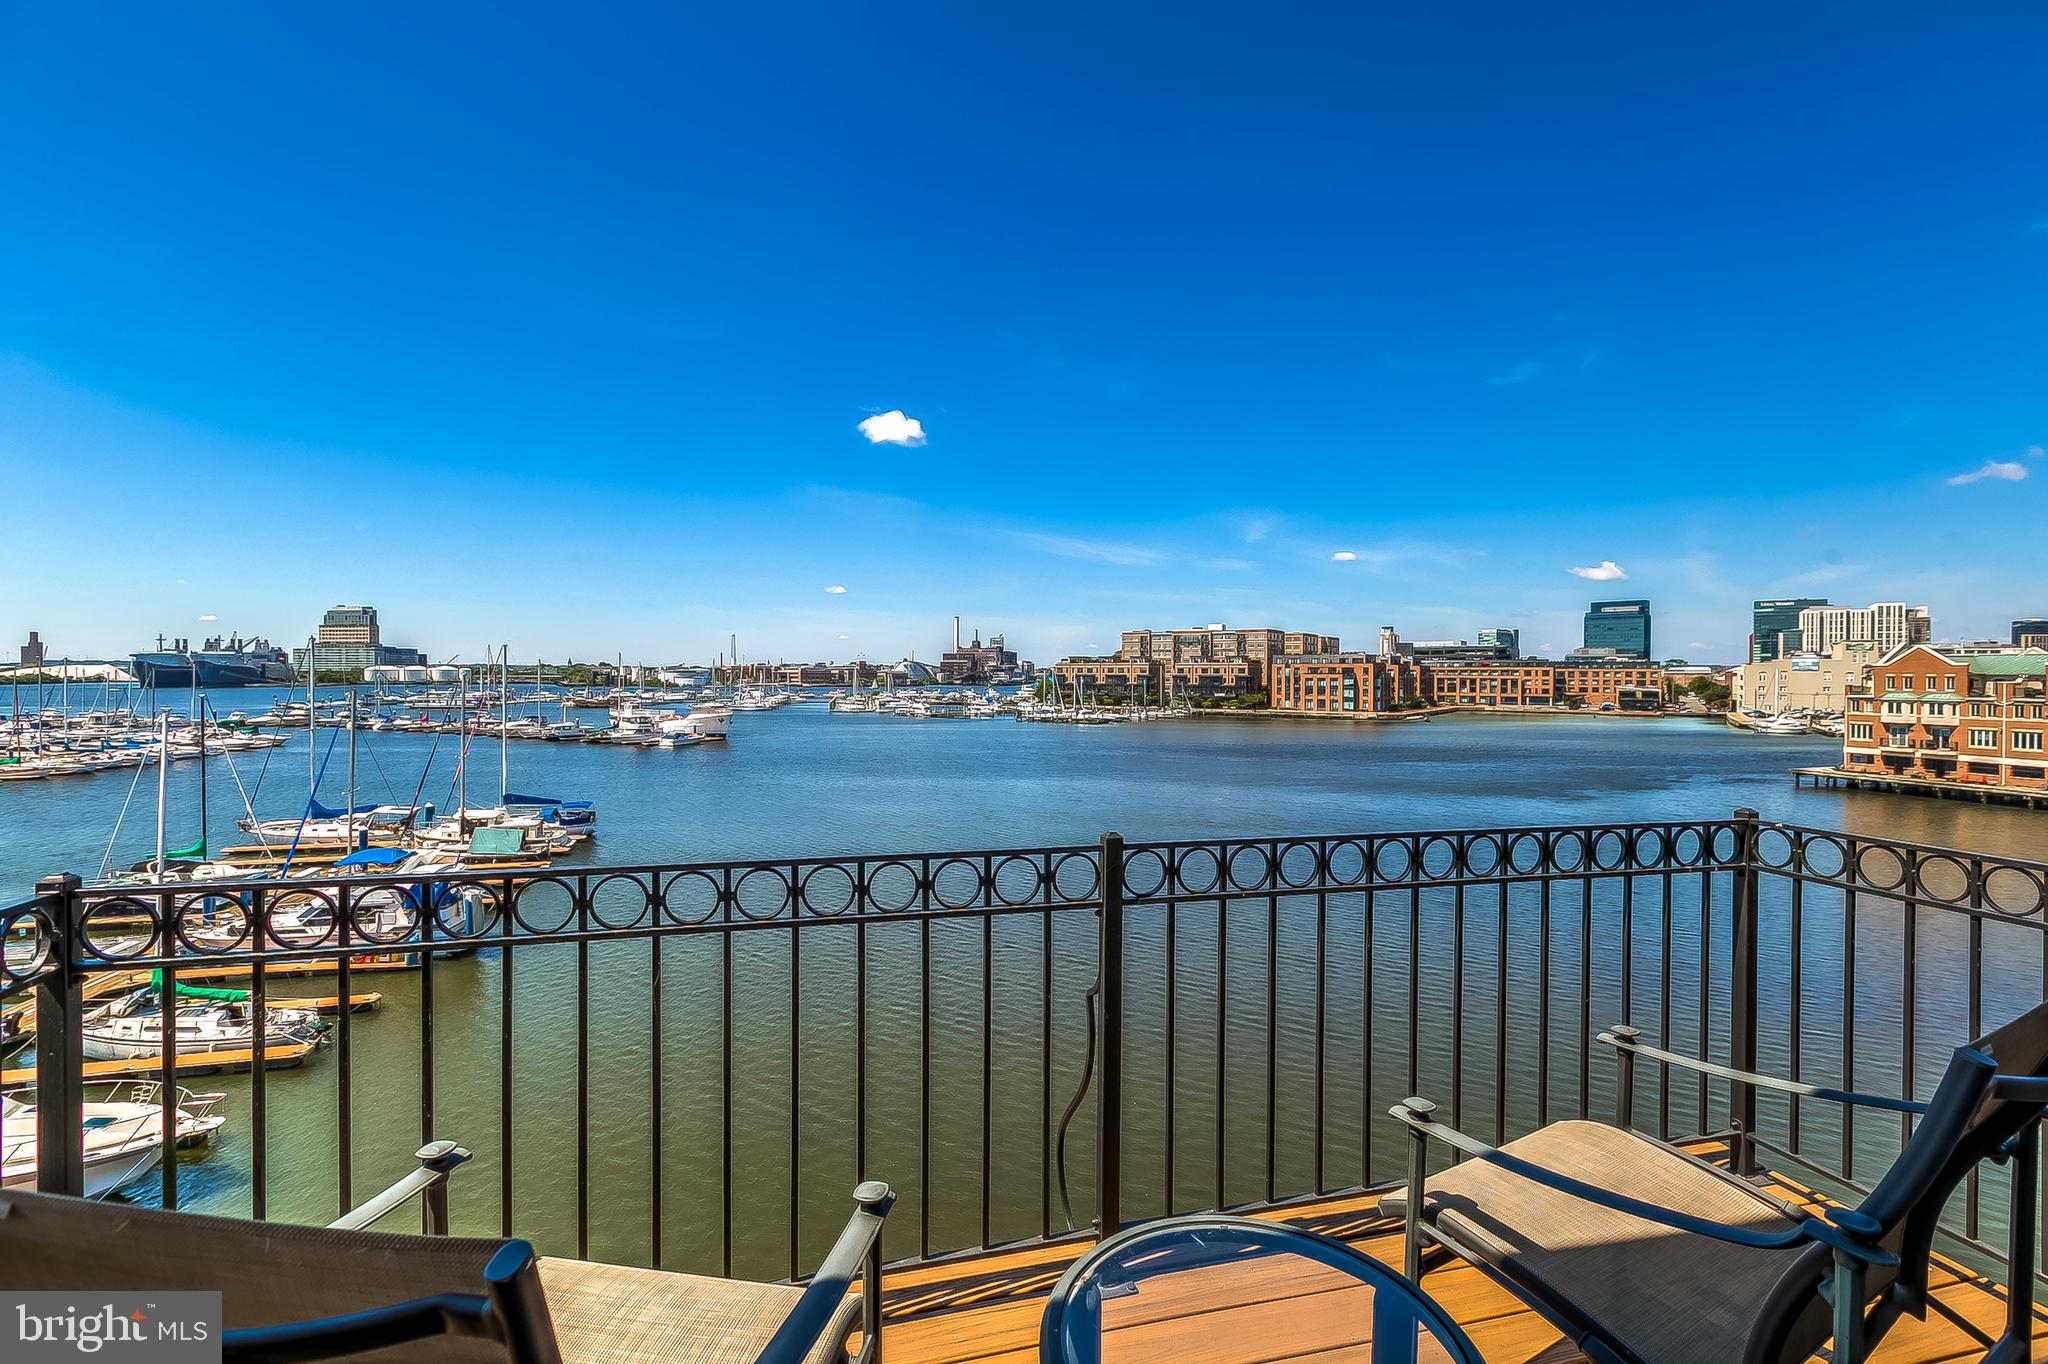 Magnificent waterfront home in Canton. North Shore's finest residence offering sweeping views of the harbor, Fells Point, Canton marina and beyond.  Four floors of unprecedented luxury.  End of group townhouse condominium with windows on three sides.  Enormous light filled rooms complete with custom millwork, high-end appliances and fixtures and a remarkably livable floorplan.  The master suite encompasses the entire fourth floor of this 4000+ sq ft residence and incorporates a spacious bath, large walk-in closet, vaulted ceilings, fireplace and waterfront balcony. The two car garage is complemented by two additional parking spaces next to the home and additional space behind the garage accommodating a total of five vehicles.  Incredibly convenient location in the heart of Canton and minutes away from Fells Point and Johns Hopkins Hospital.  This is downtown living at its finest.